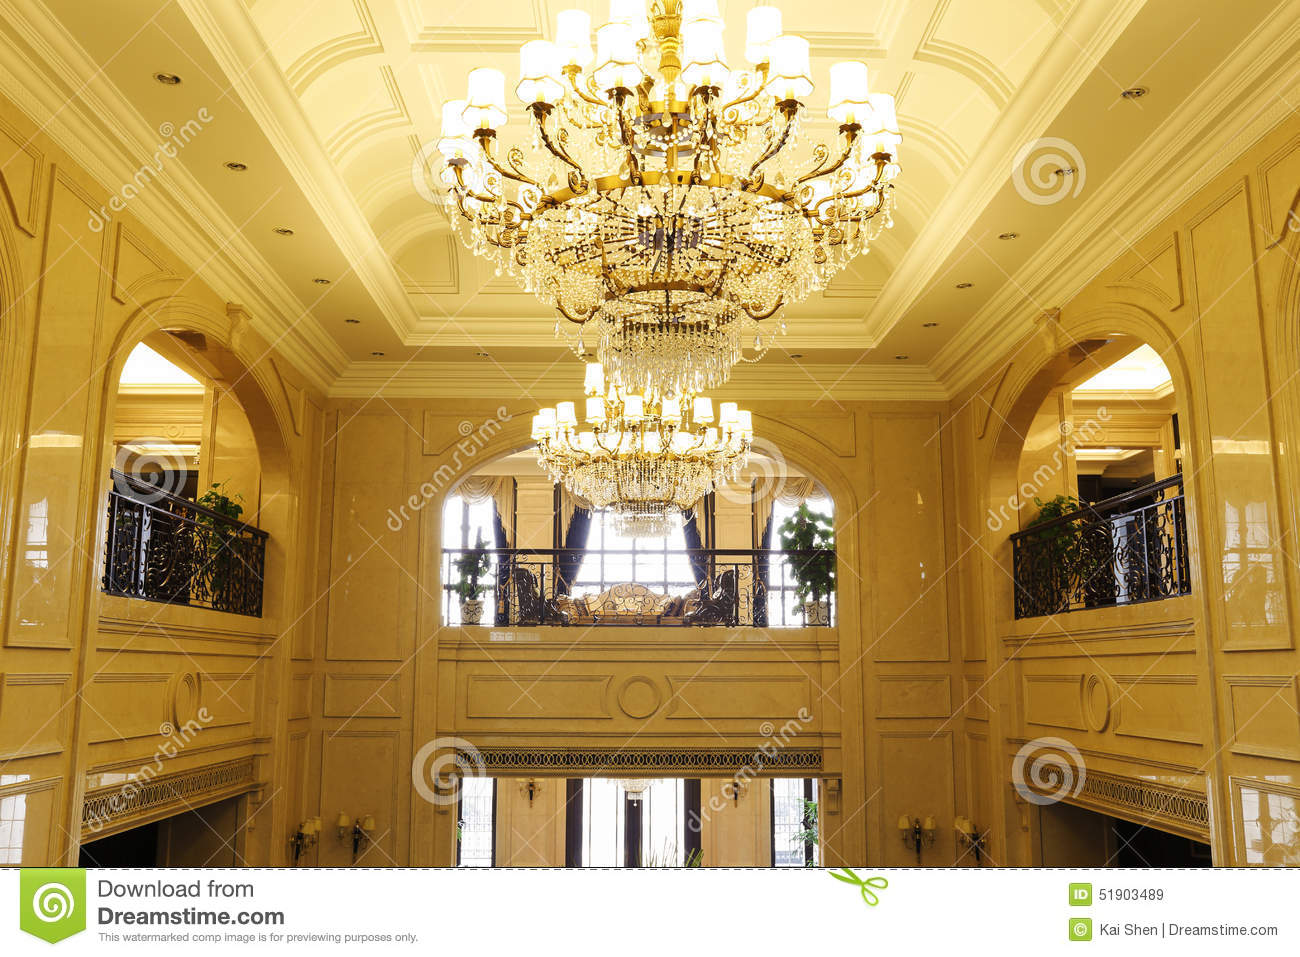 Arch arched chandeliers corridors delicate floors lobby